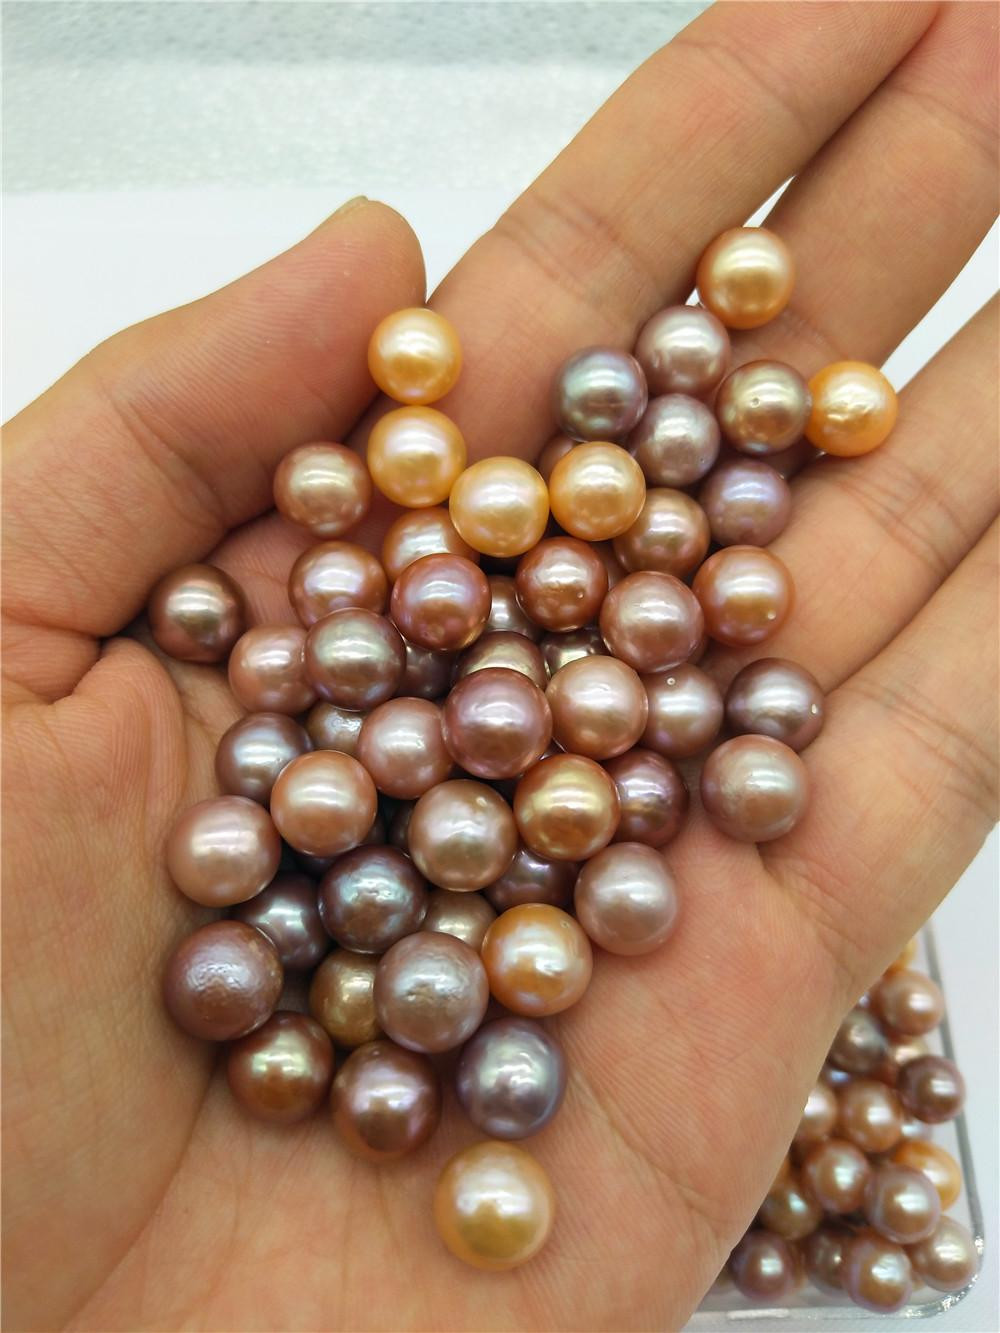 loose pearls vase filler wholesale of natural colors aaa grade 8 5 9 5mm edison loose pearls big huge pertaining to surface with tiny blemishes please look at the pictures